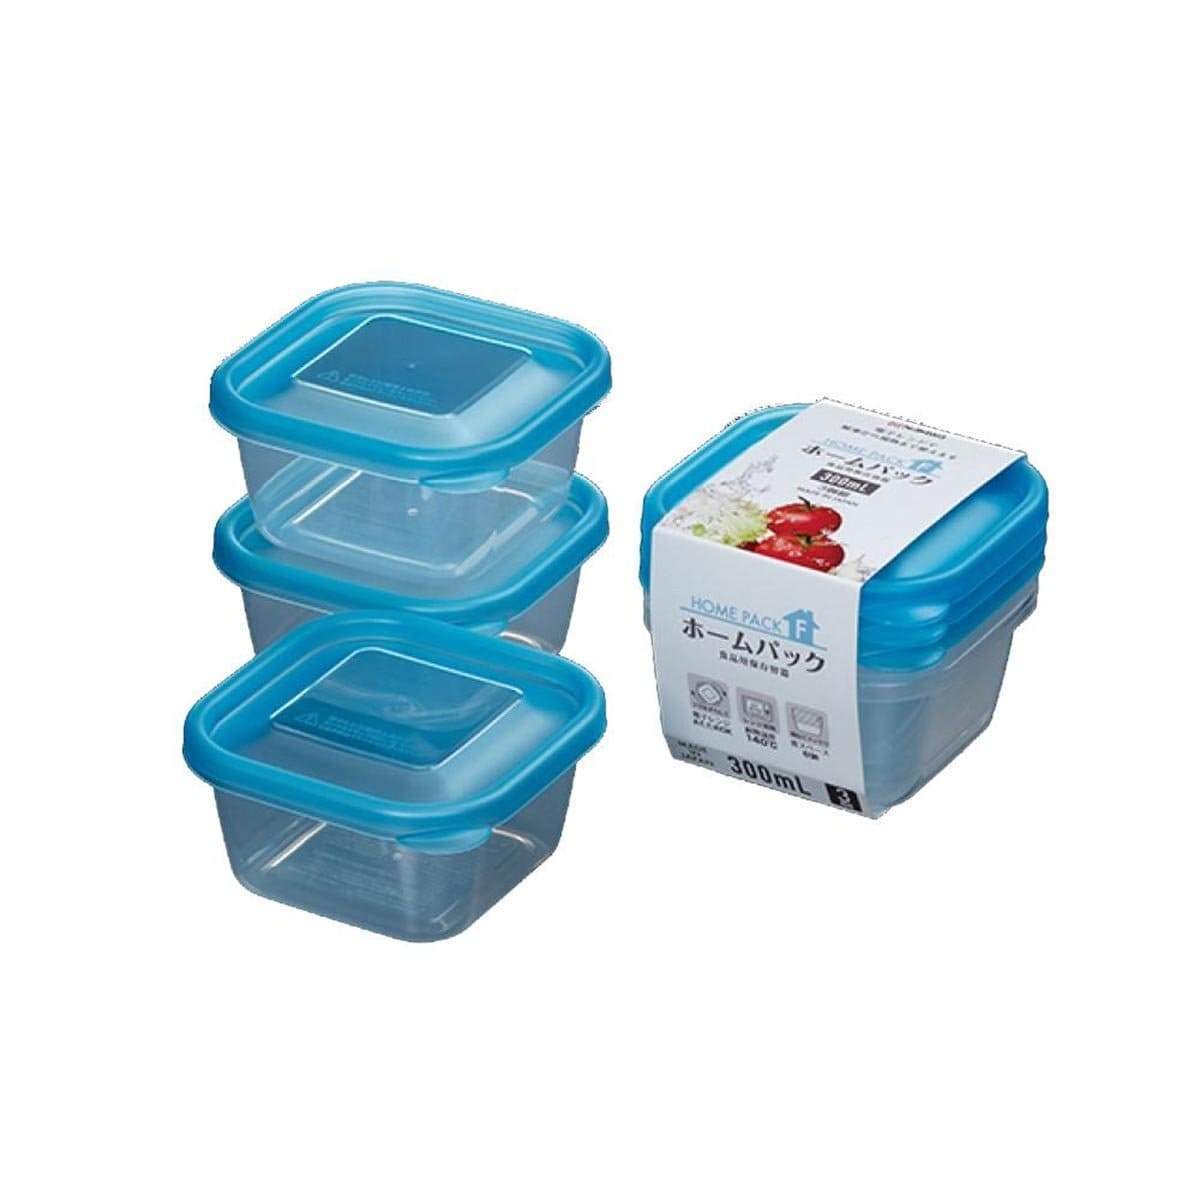 Japanese Plastic Food Storage Container Homepack F (300ml x 3p)